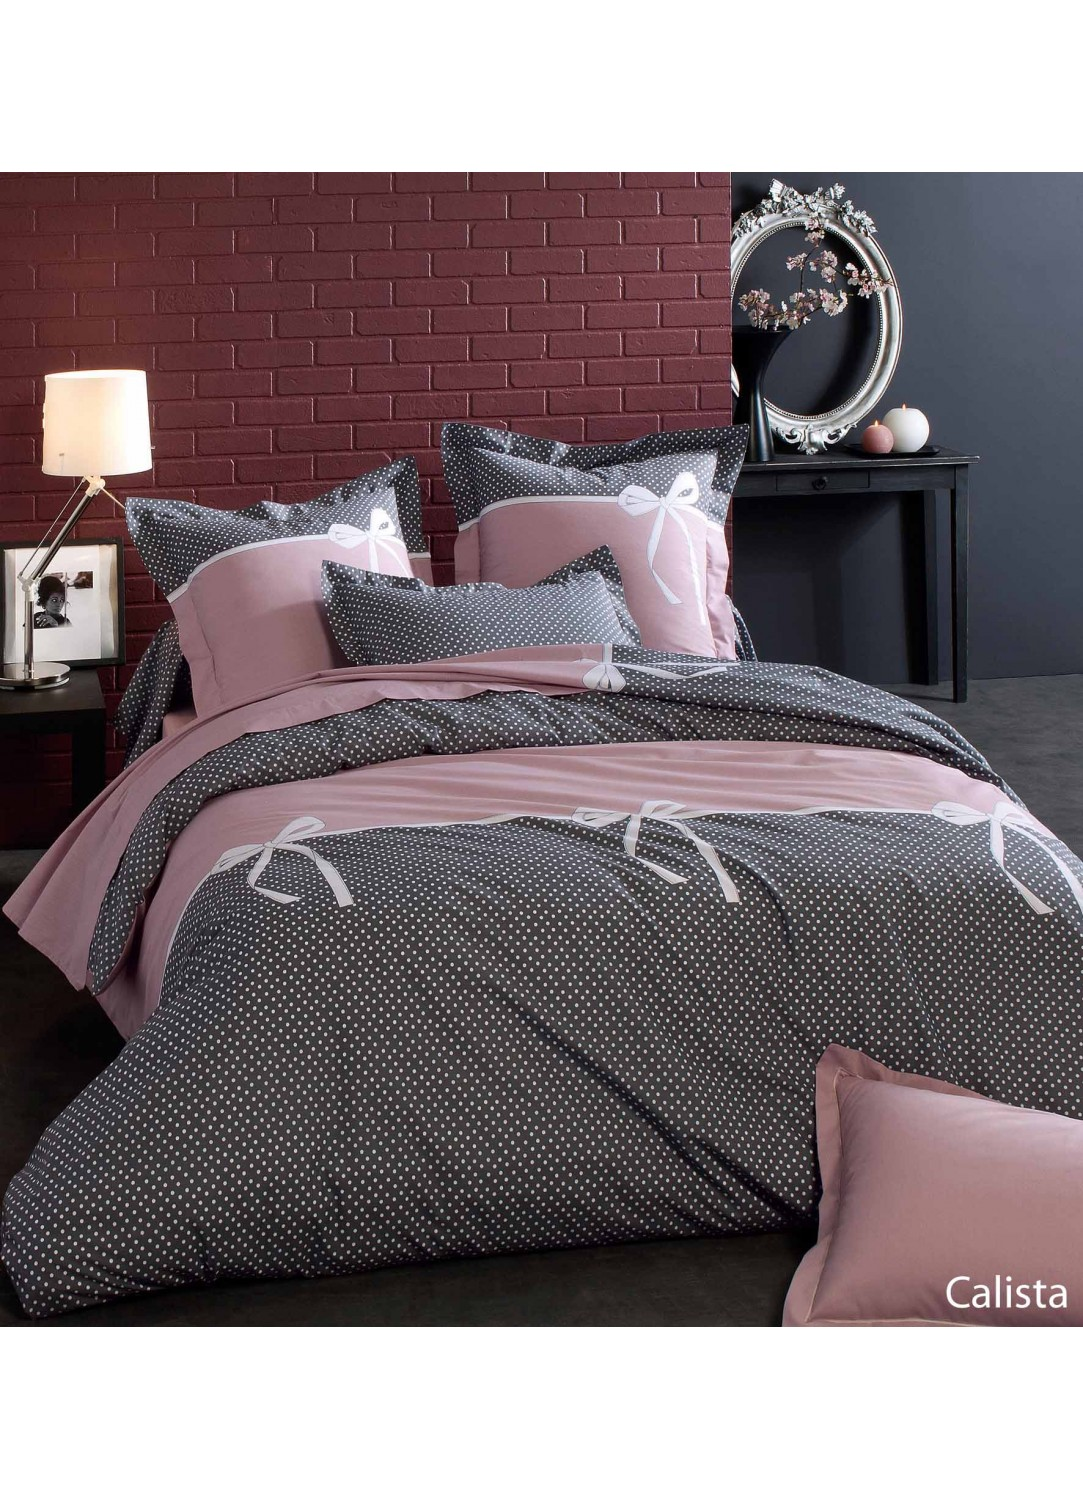 drap calista imprim s pois et noeud aubergine homemaison vente en ligne draps. Black Bedroom Furniture Sets. Home Design Ideas